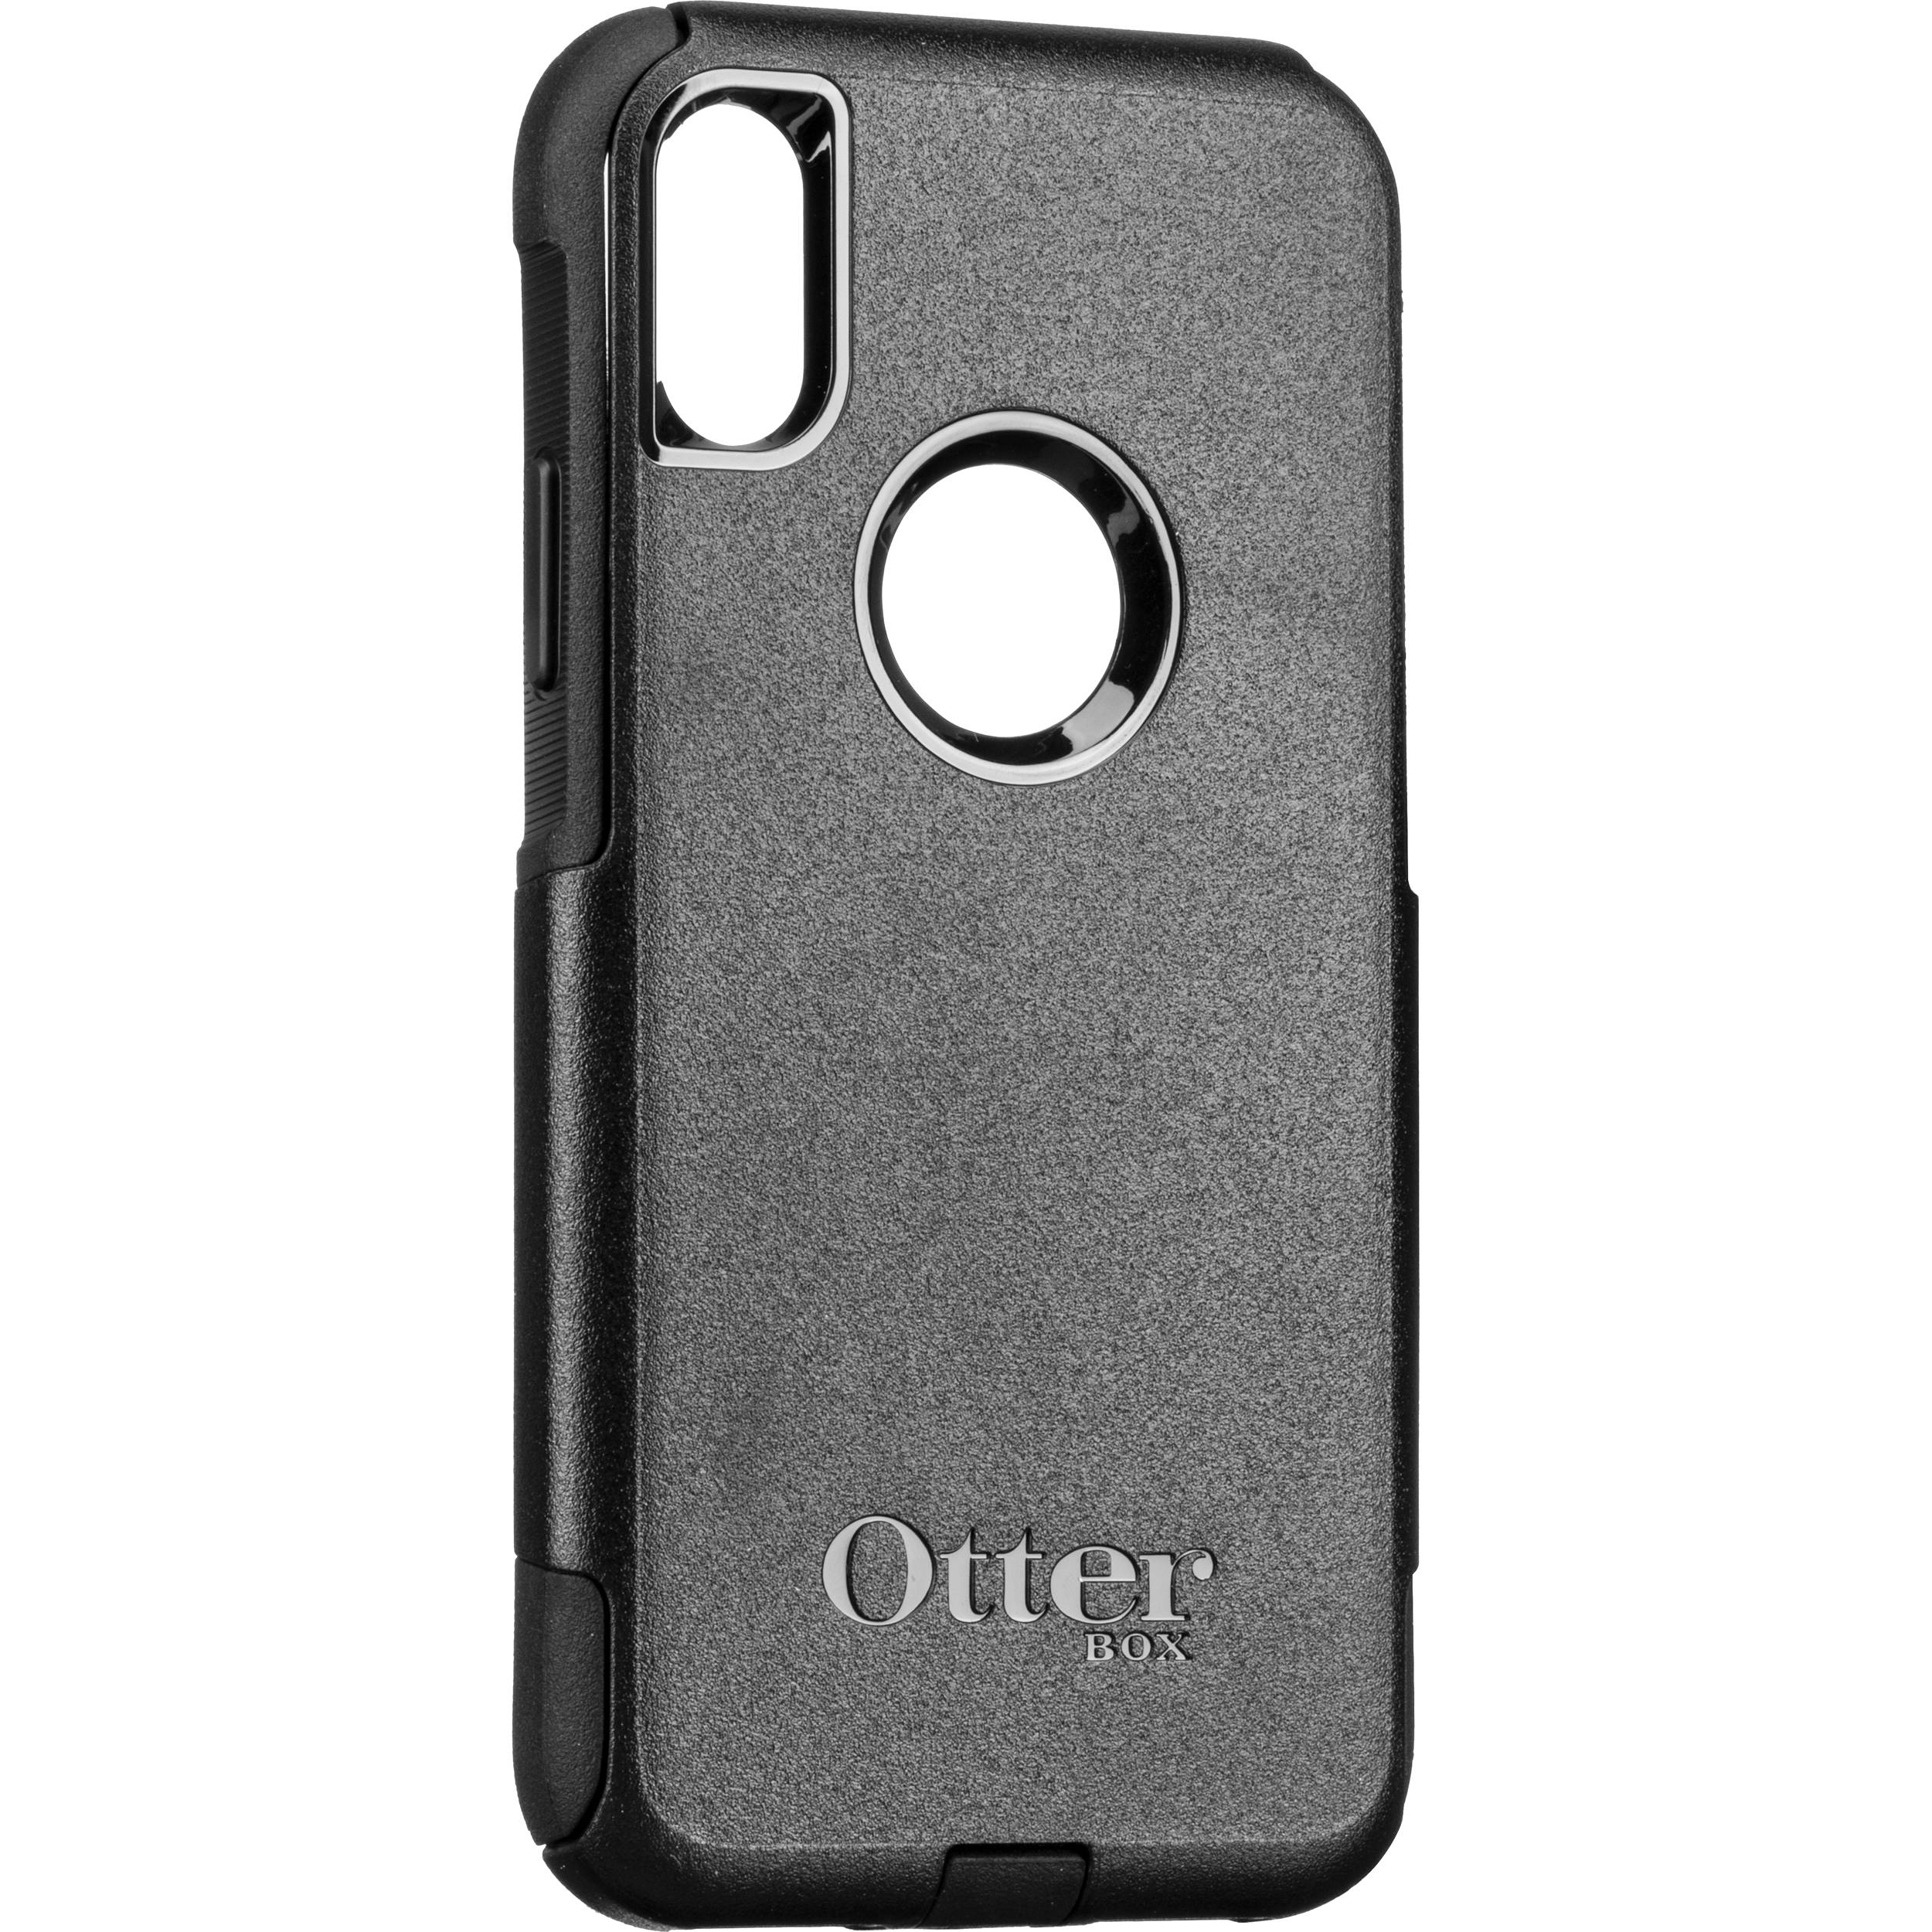 on sale 6e19c f5734 OtterBox Commuter Case for iPhone Xs (Black)